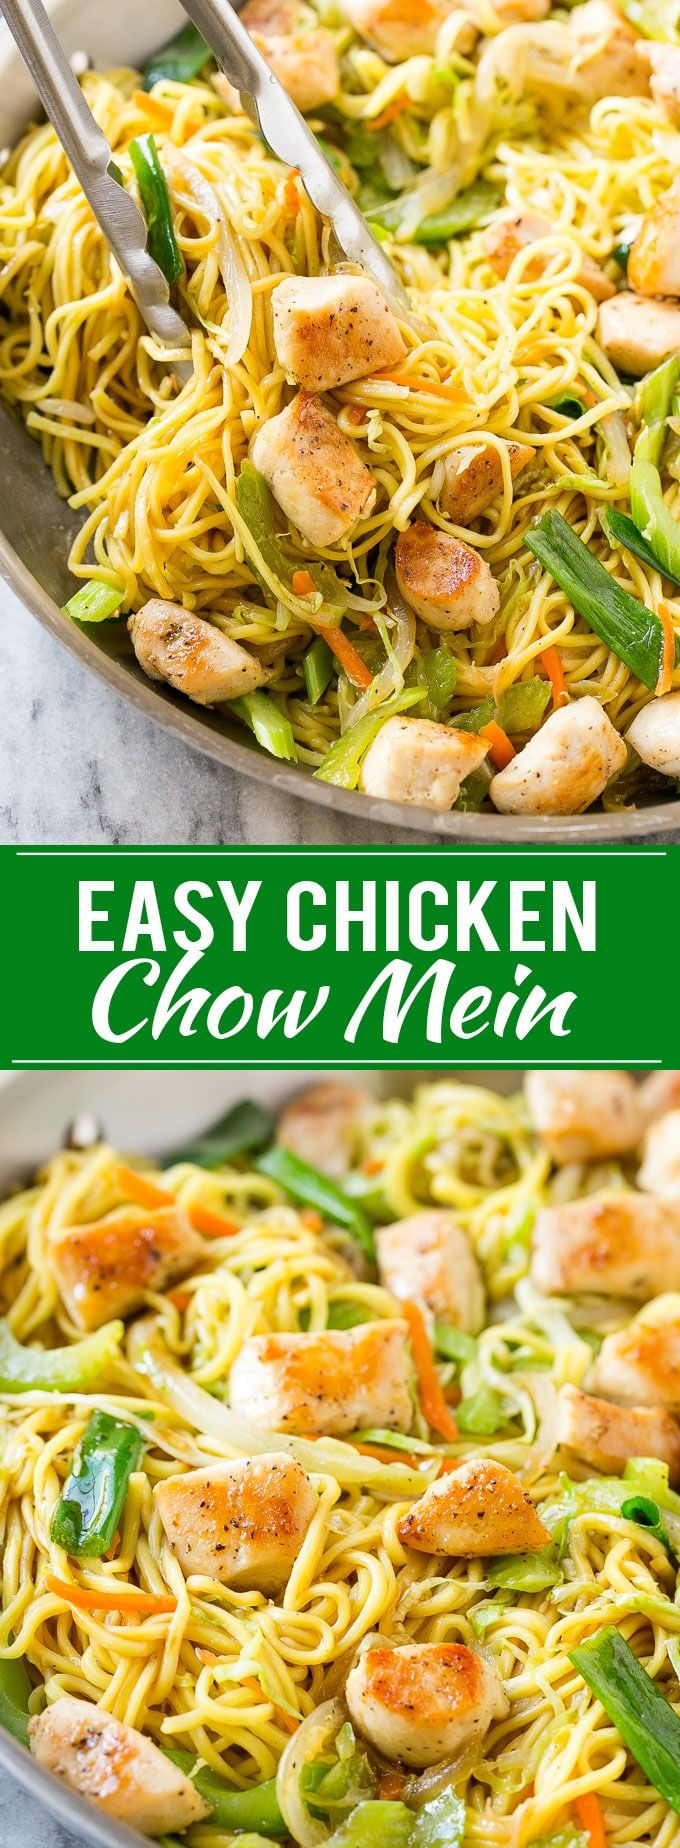 Chicken chow mein recipe easy chicken recipe chow mein chinese chicken chow mein recipe easy chicken recipe chow mein chinese food dinnerrecipeschinese forumfinder Gallery